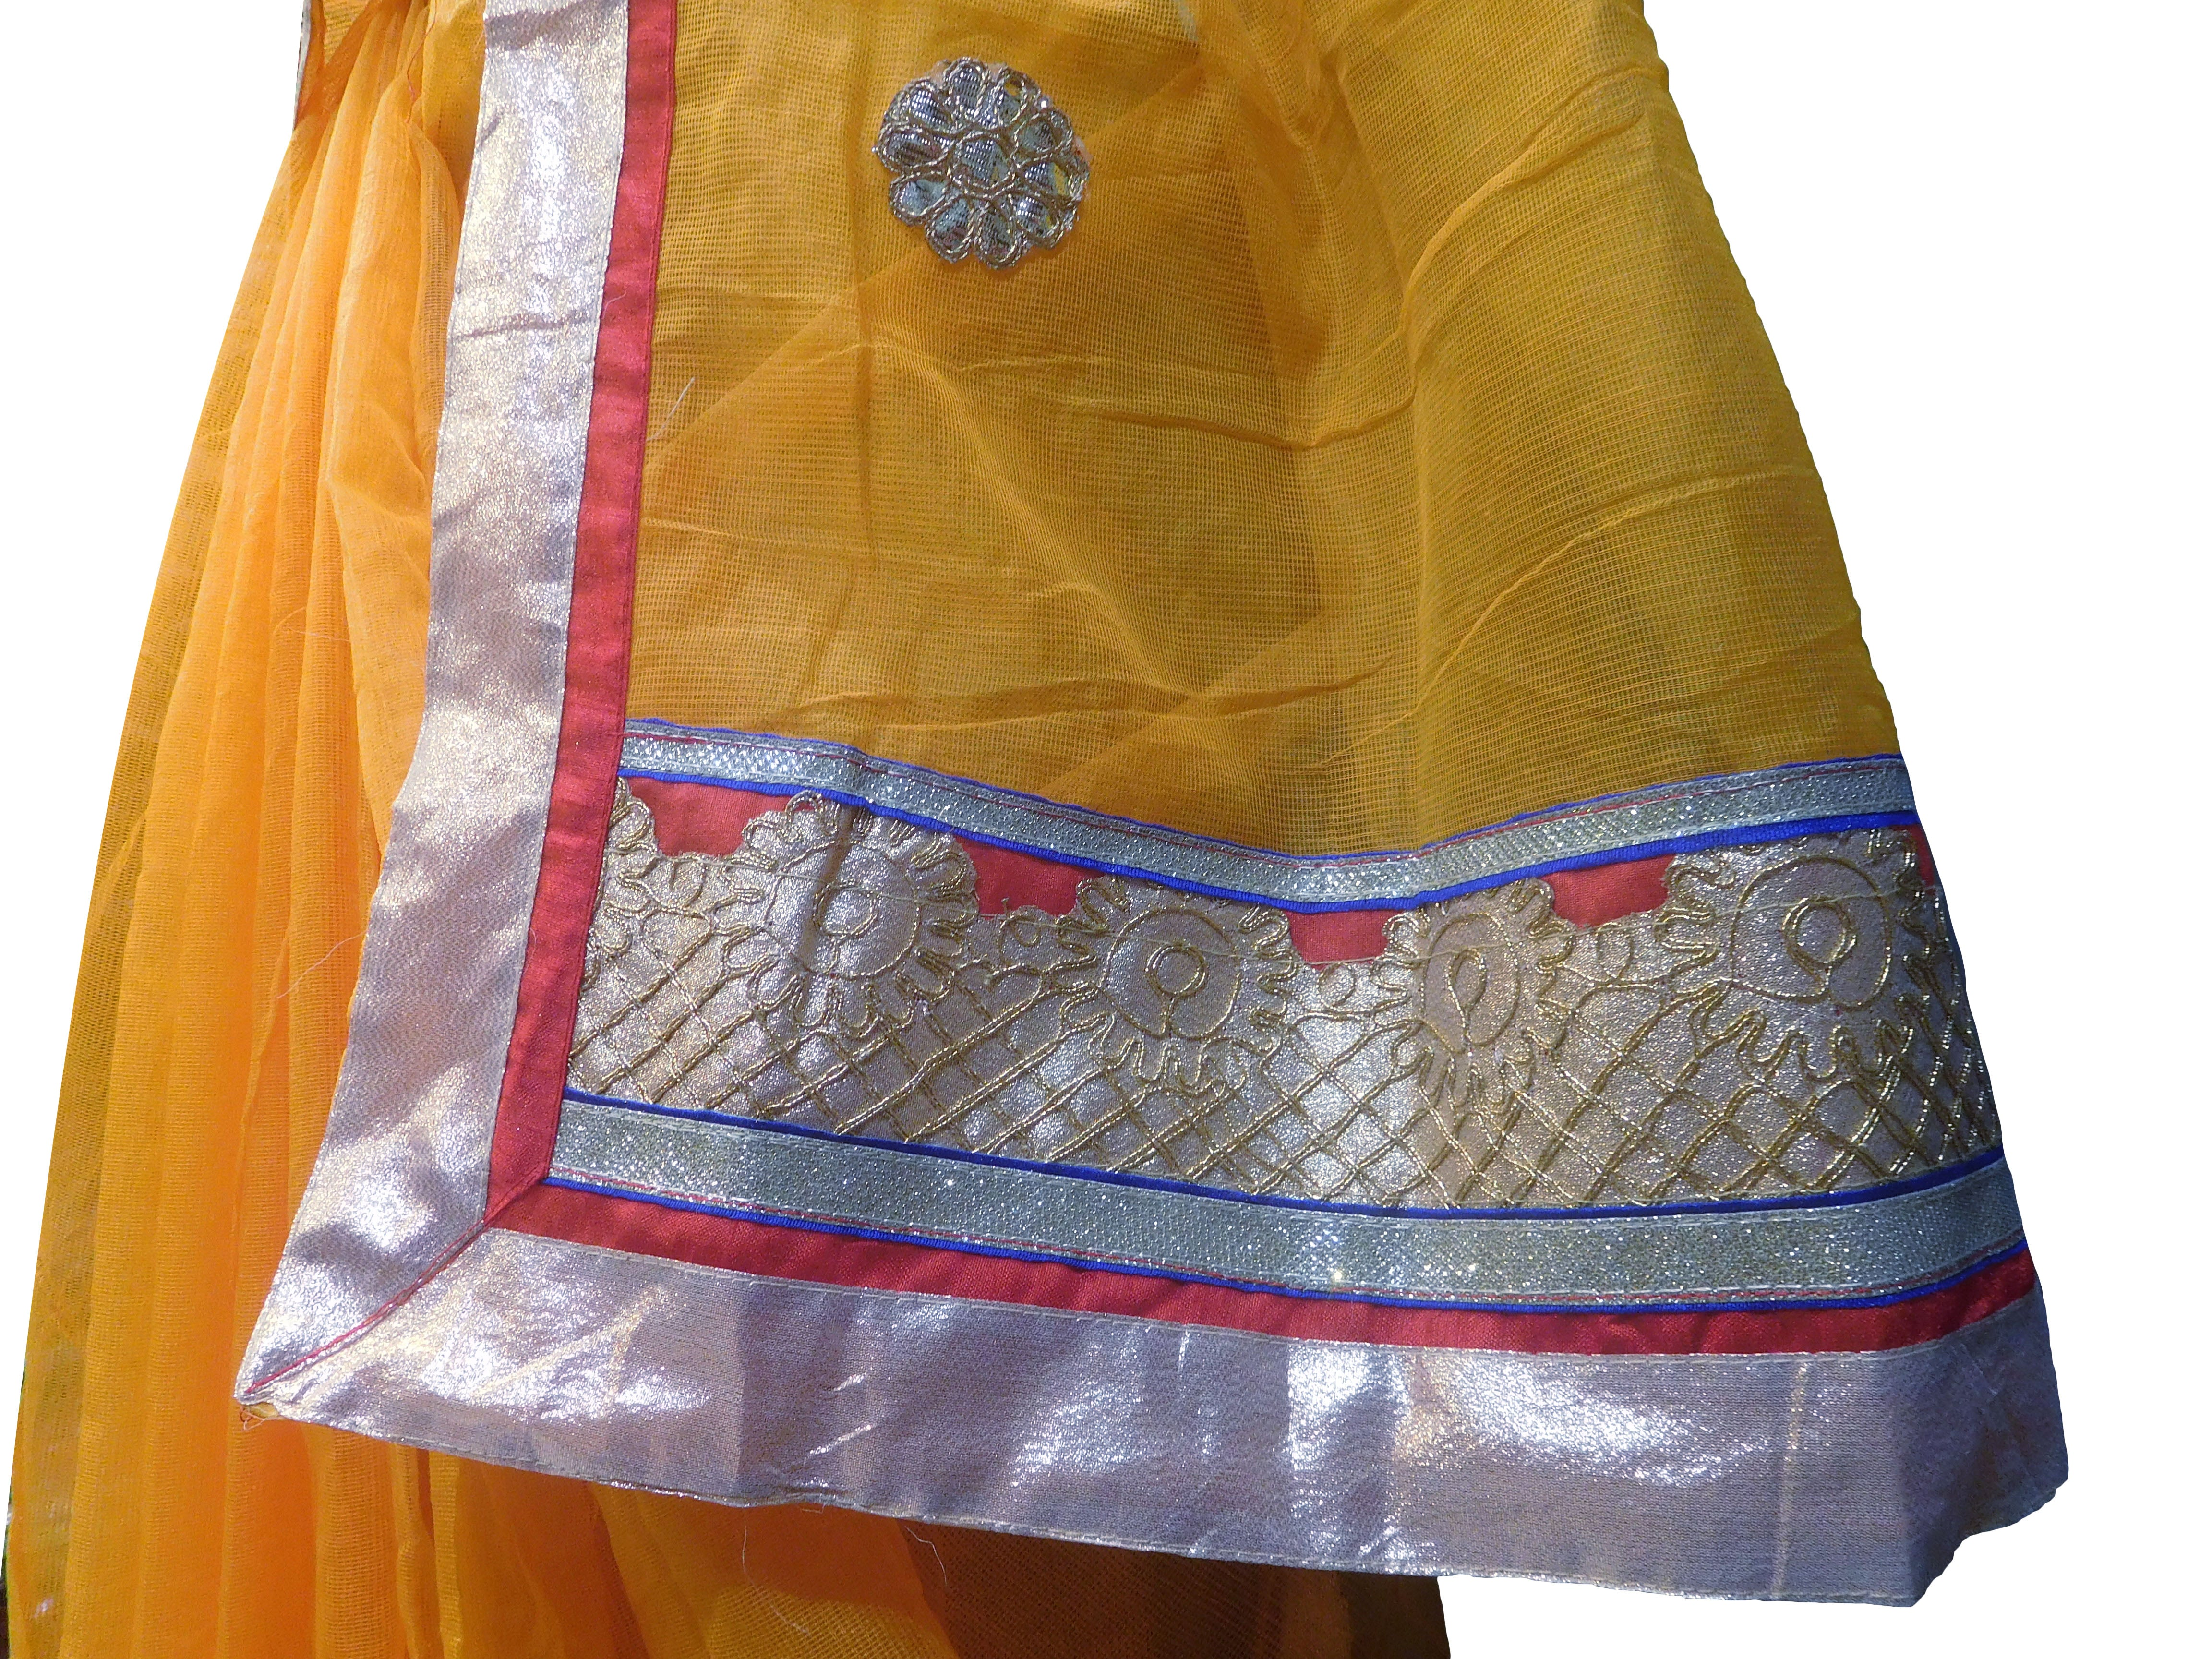 SMSAREE Yellow Designer Wedding Partywear Supernet (Cotton) Zari & Gota Hand Embroidery Work Bridal Saree Sari With Blouse Piece E827